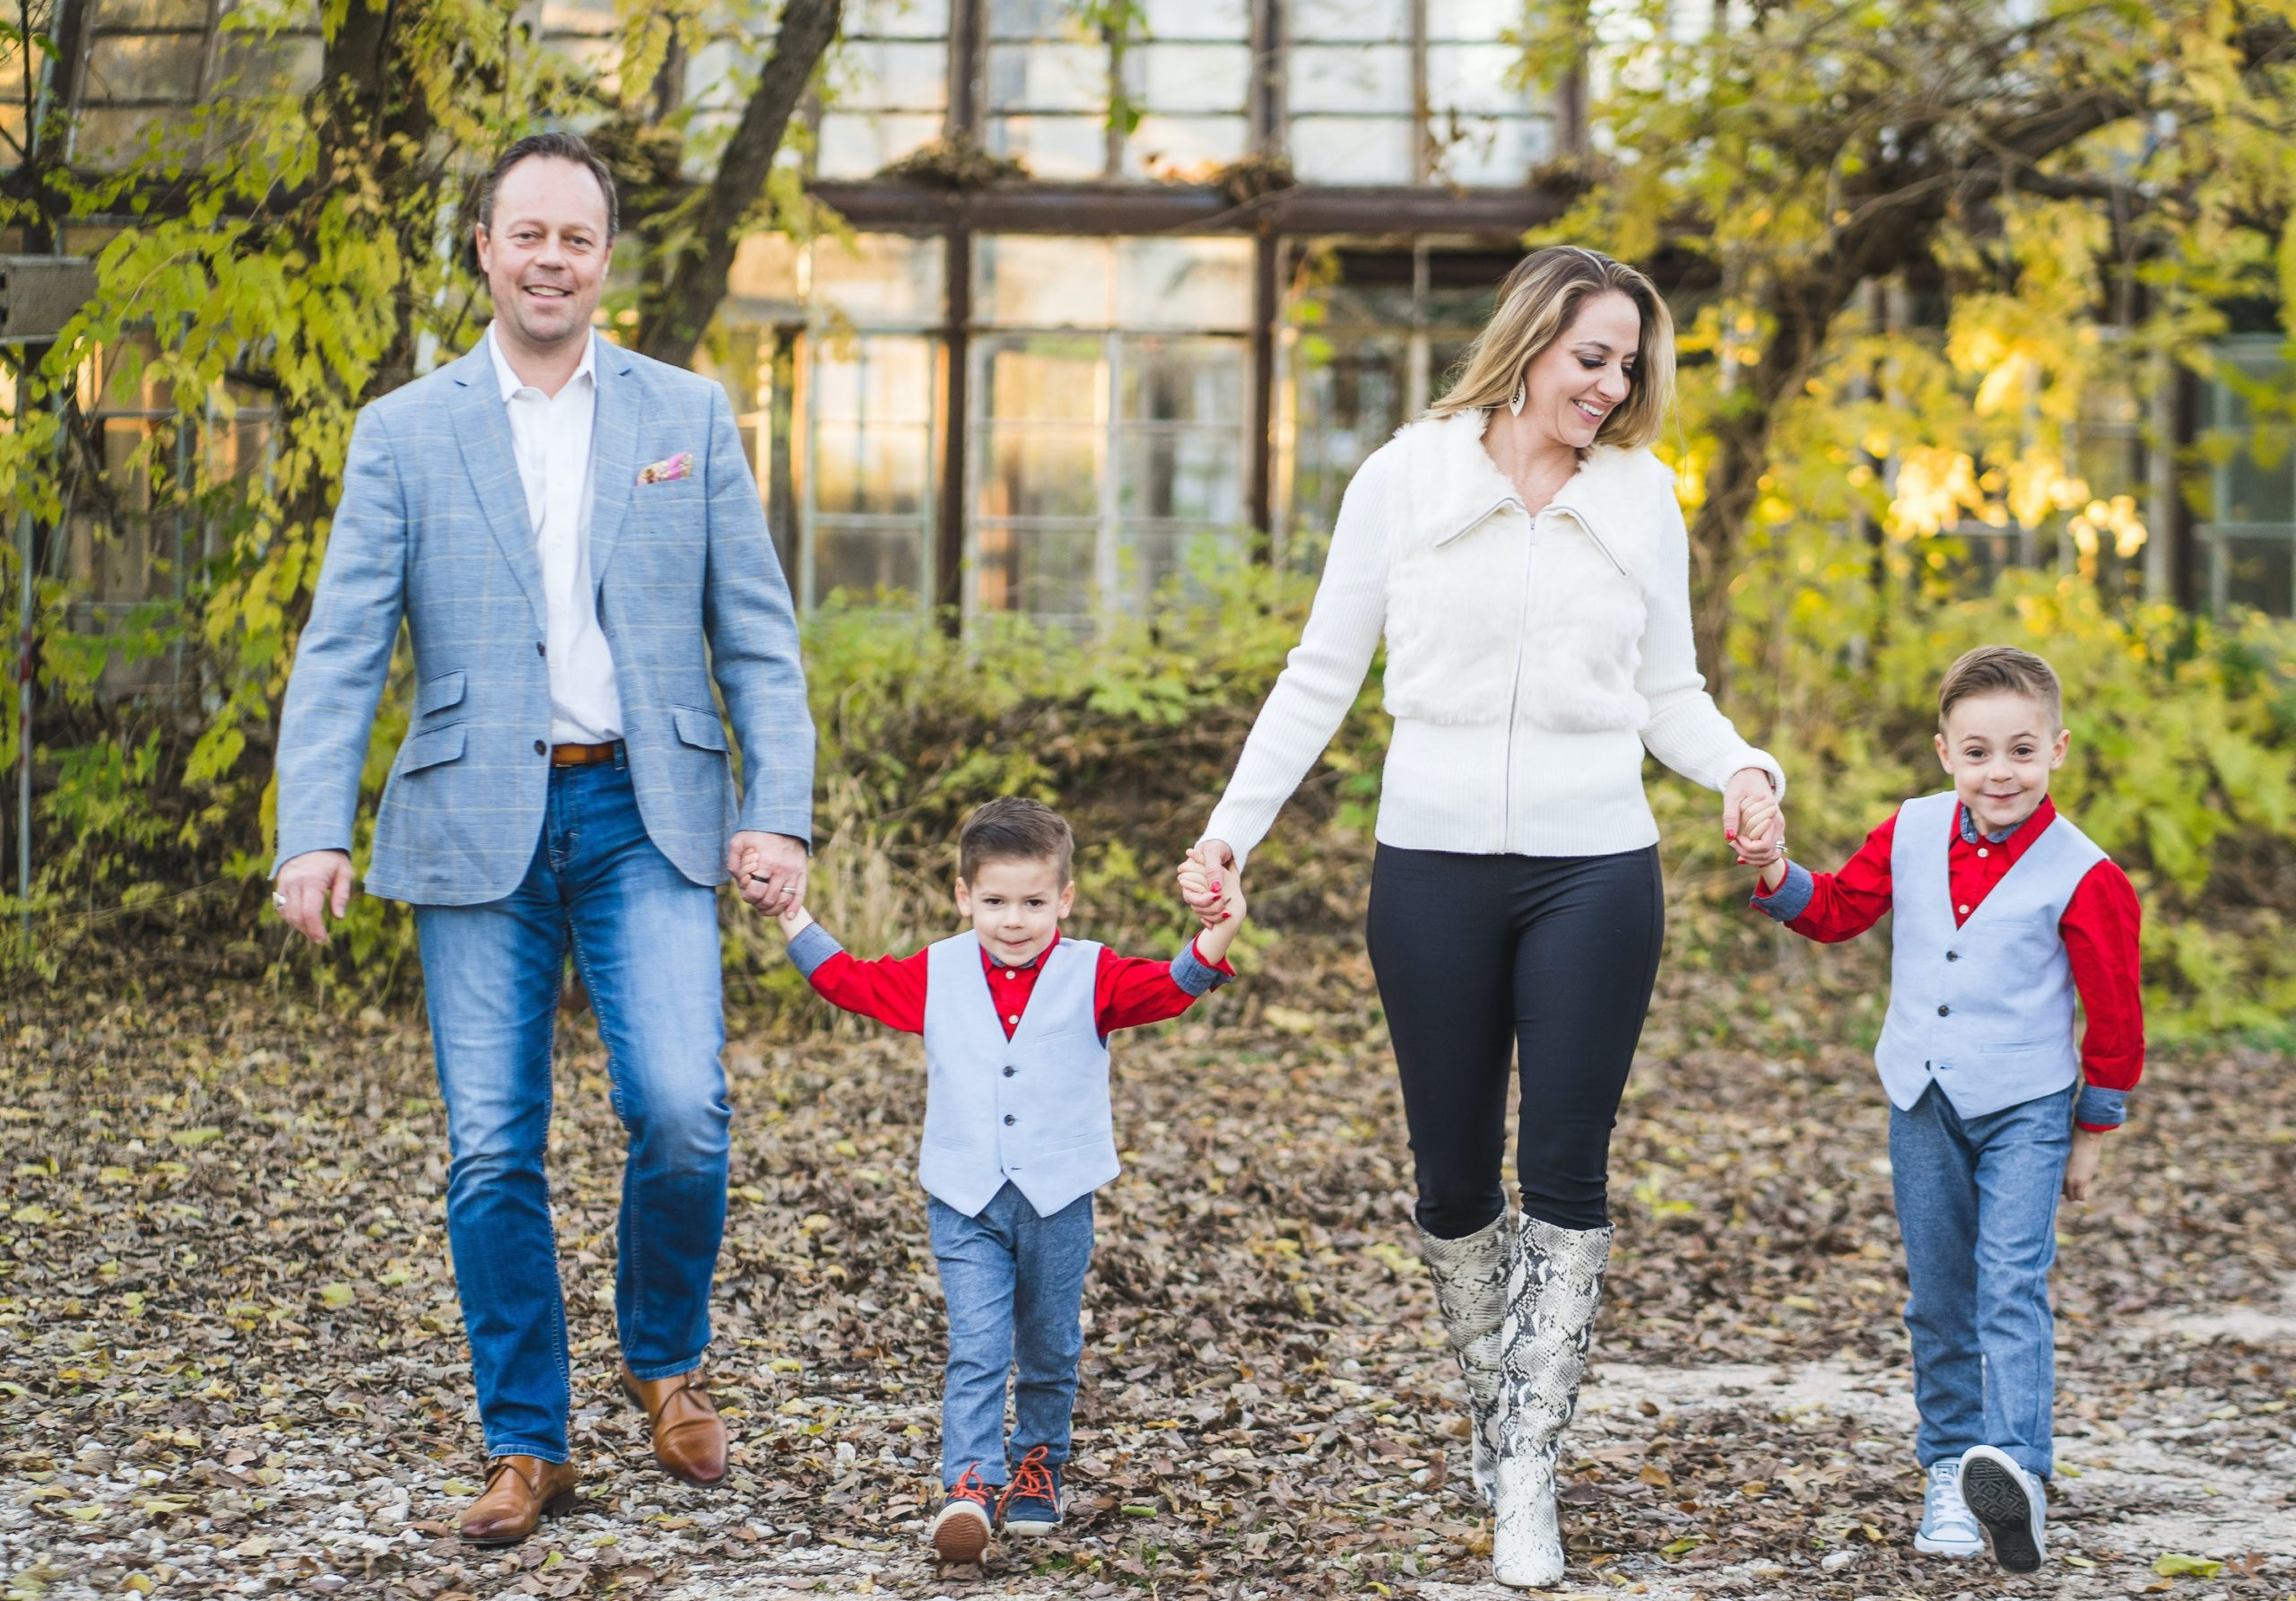 Priscilla Hardenne, owner of Style and Beauty by Priscilla, and her family